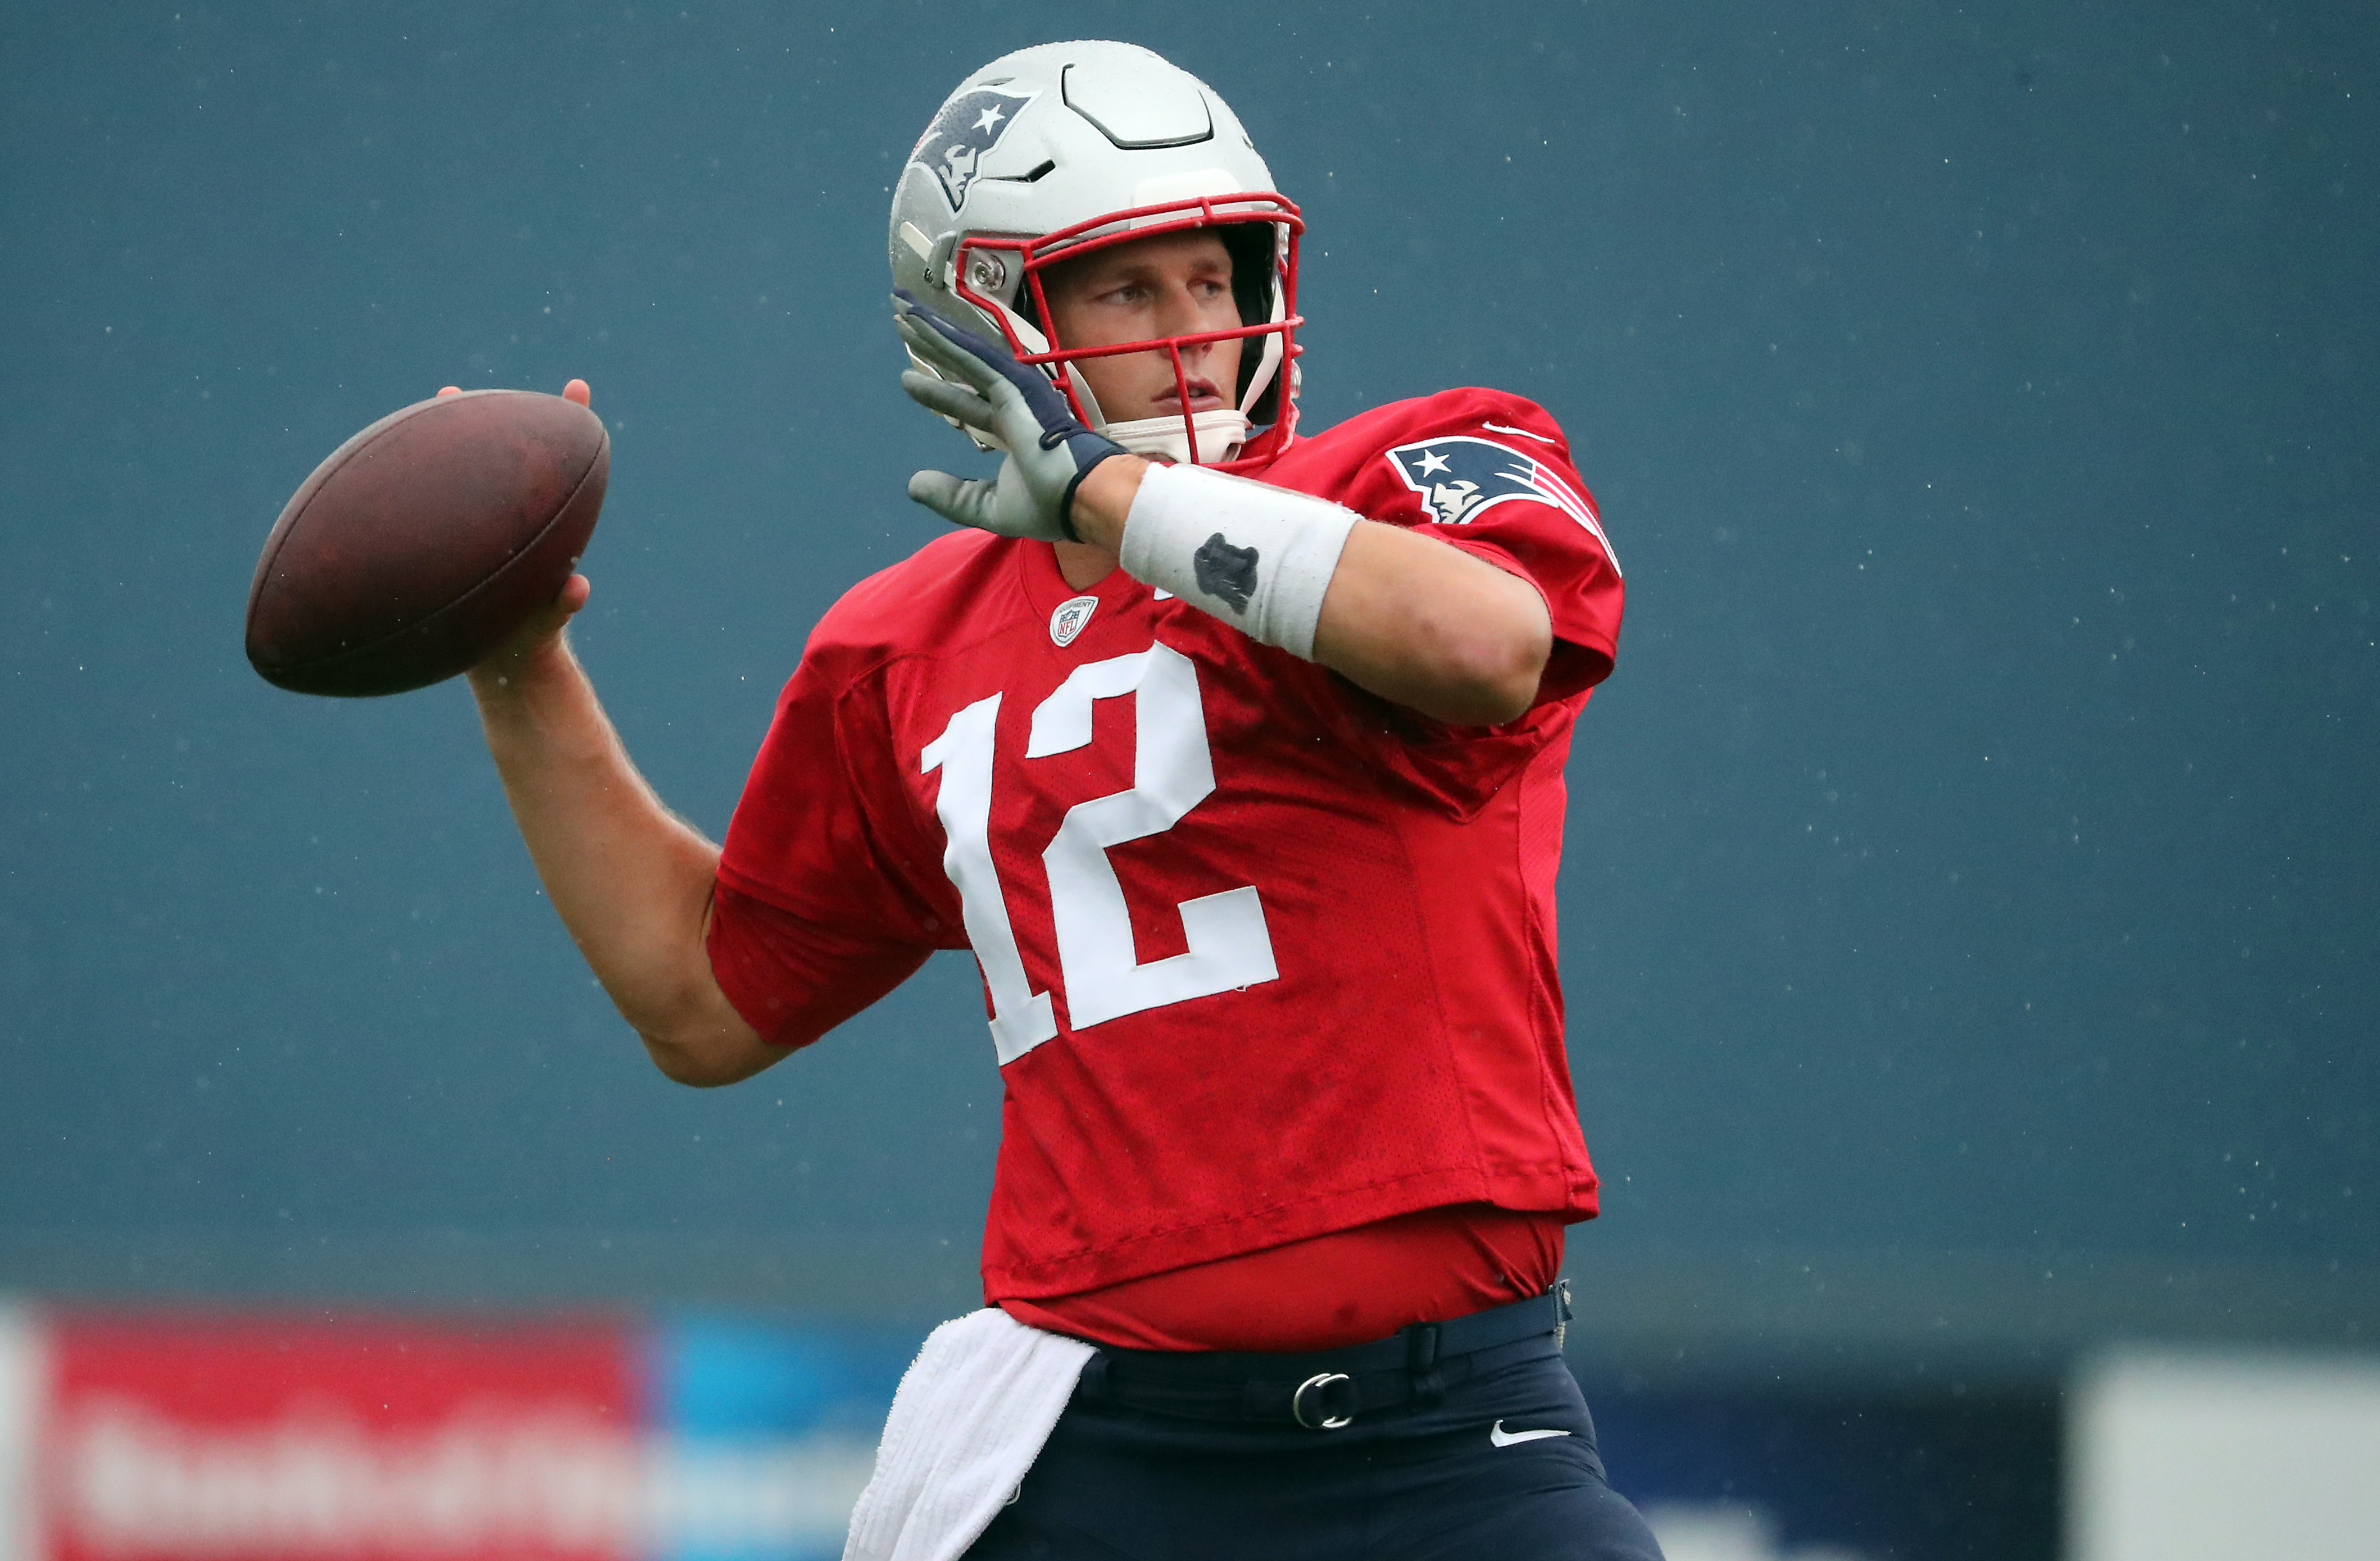 With his new contract, it sure looks like Tom Brady